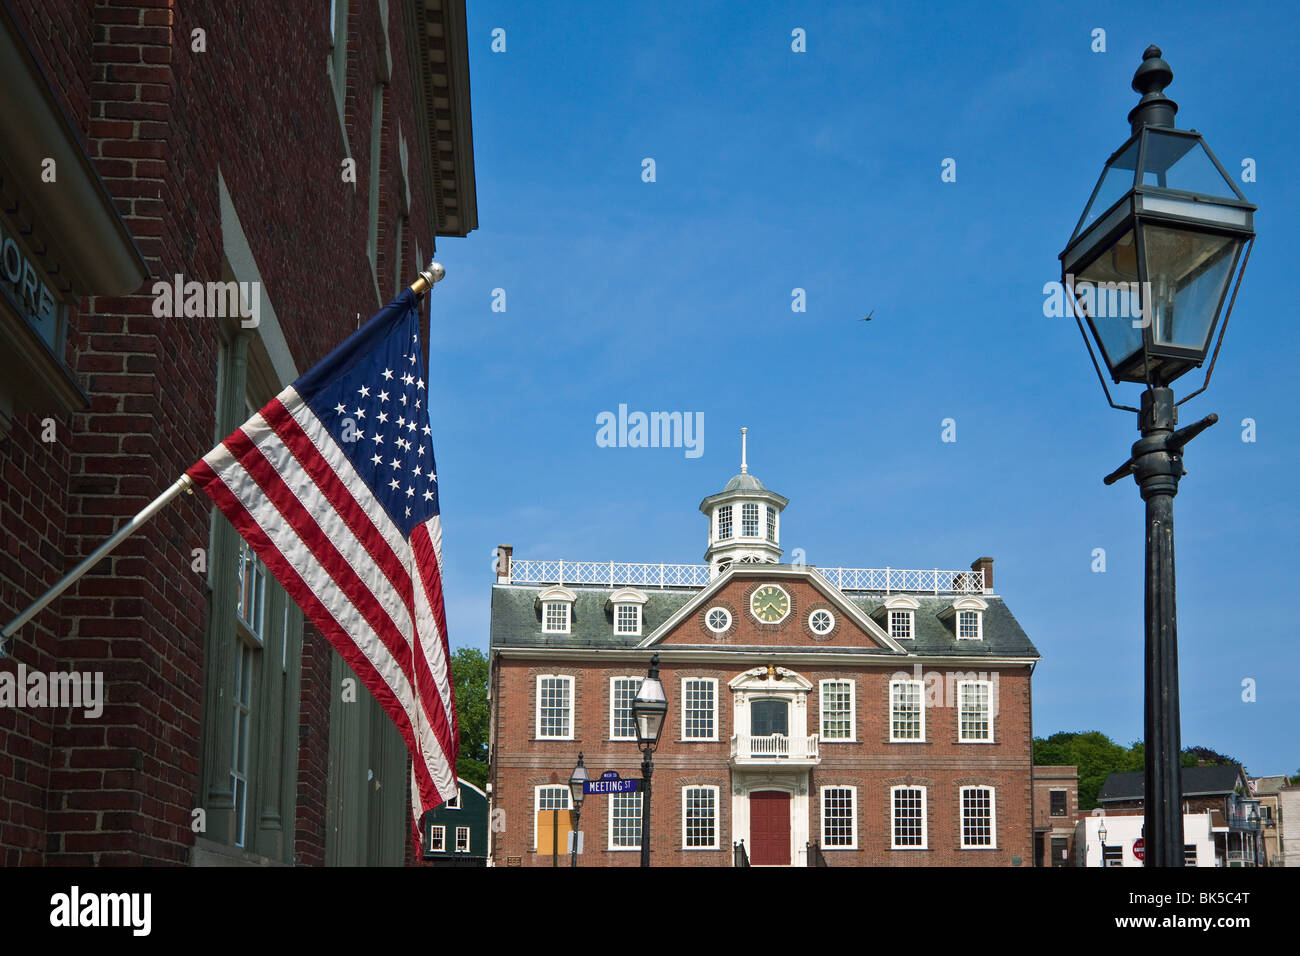 The Stars and Stripes and  Old Colony House used in the film Amistad, on Washington Square in Newport, Rhode Island, - Stock Image